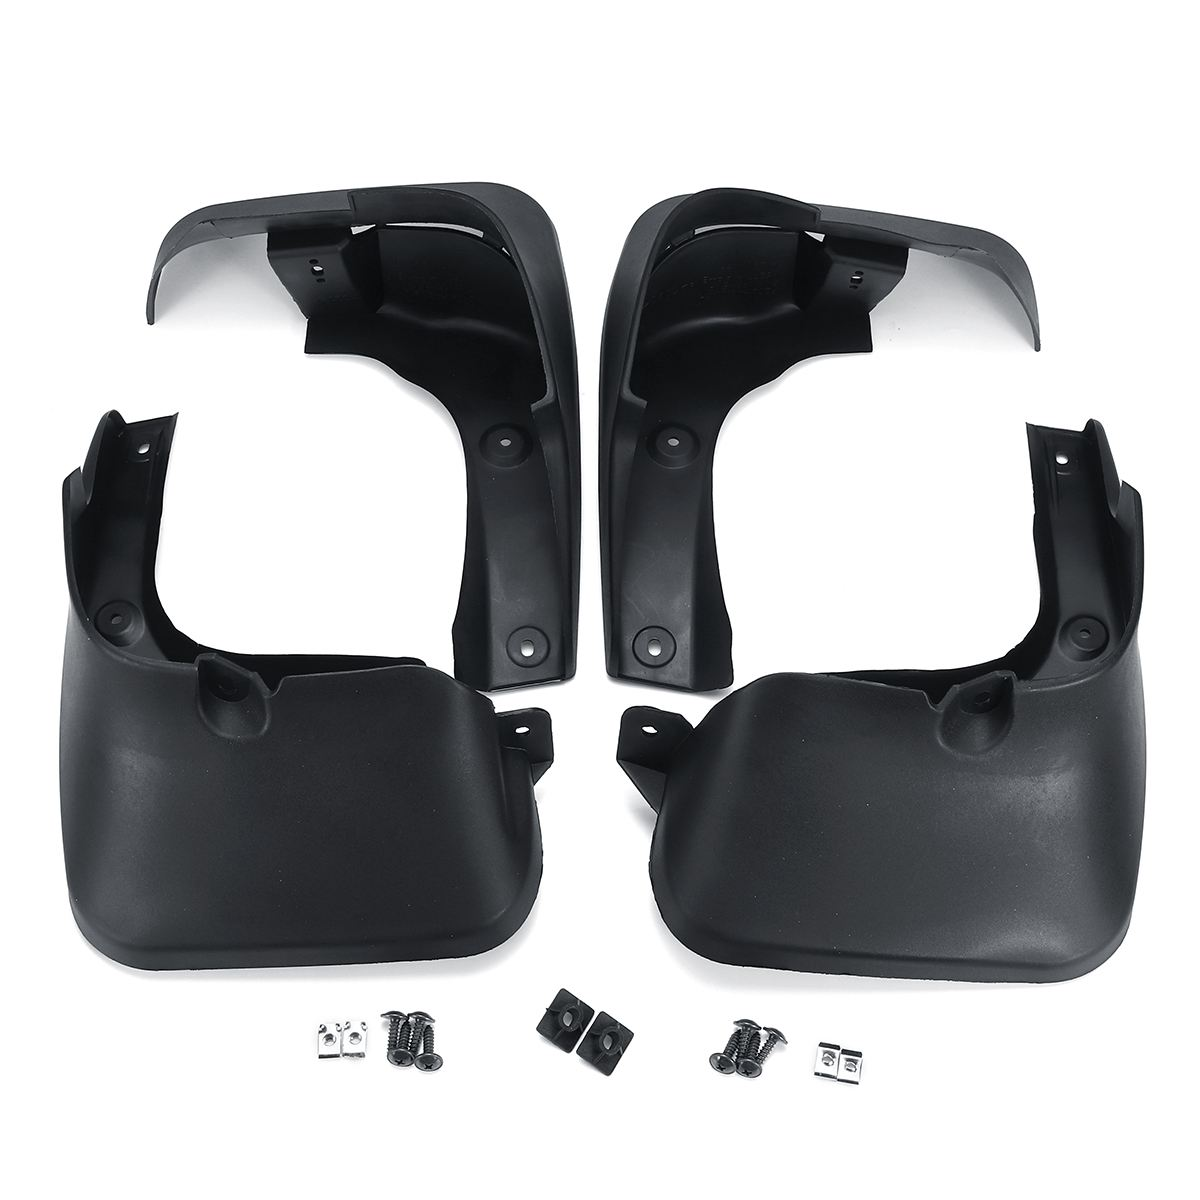 Image 2 - Car Mud Flaps For LEXUS RX RX270 RX300 RX350 RX450H 2010 2015 Splash Guards Mudflaps Mudguards Accessories-in Mudguards from Automobiles & Motorcycles